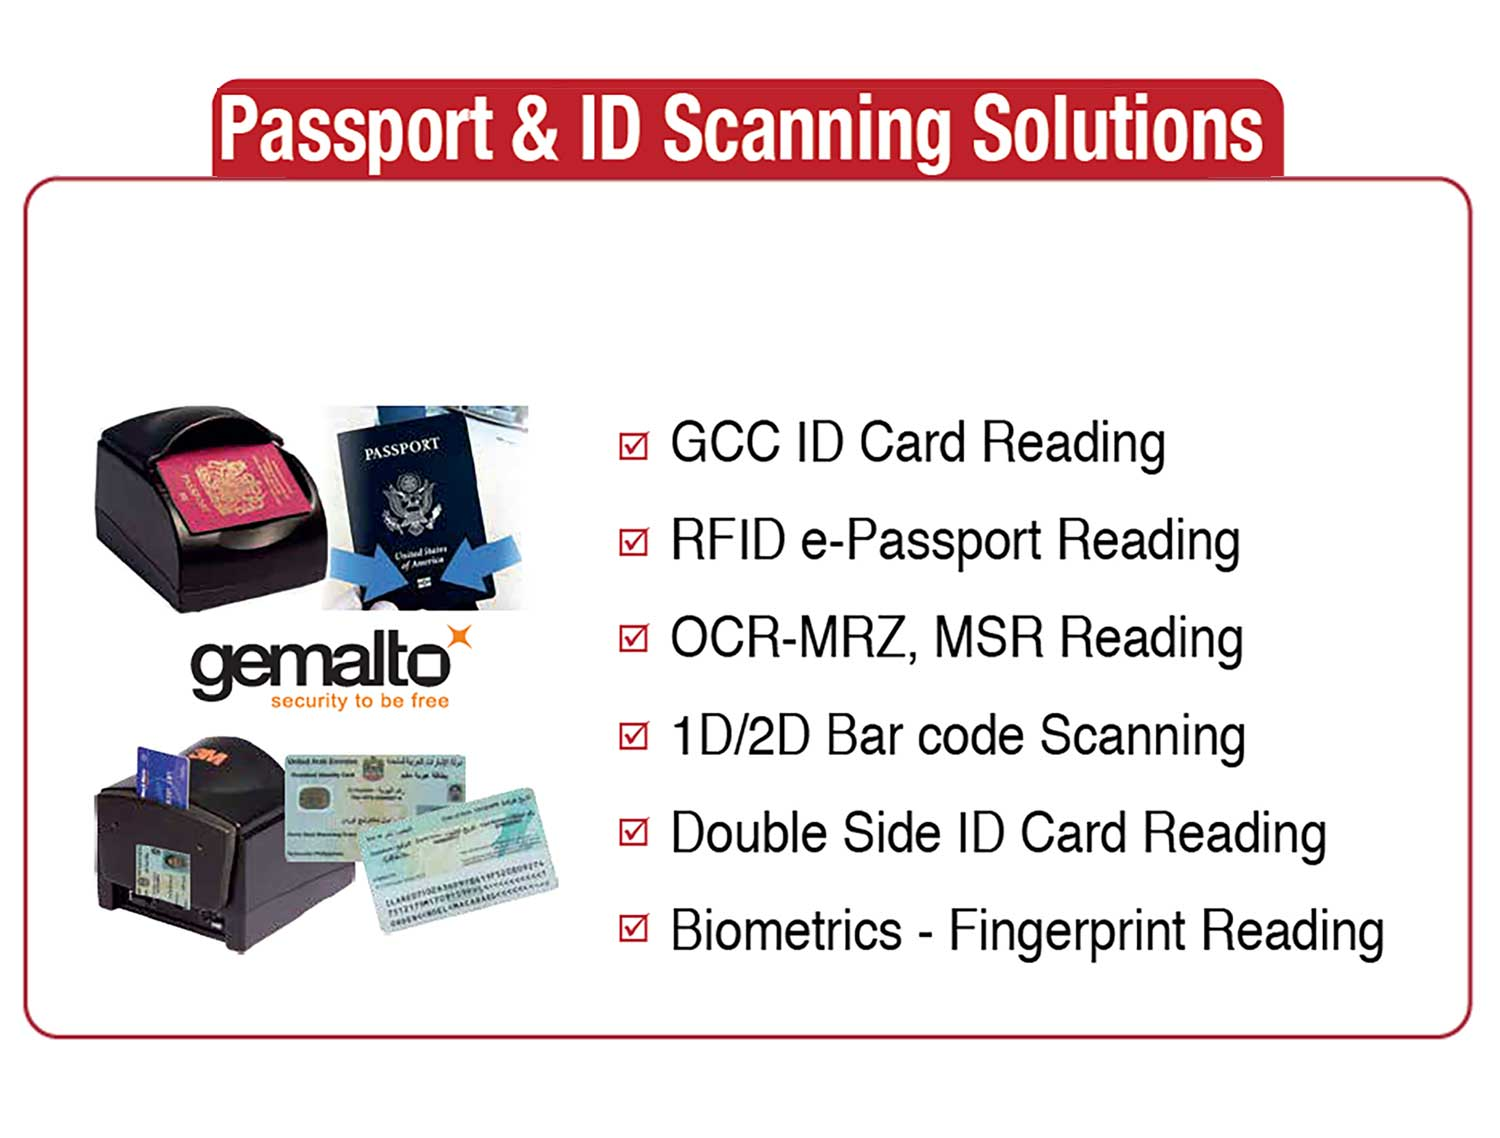 Passport ID Scanning Solutions